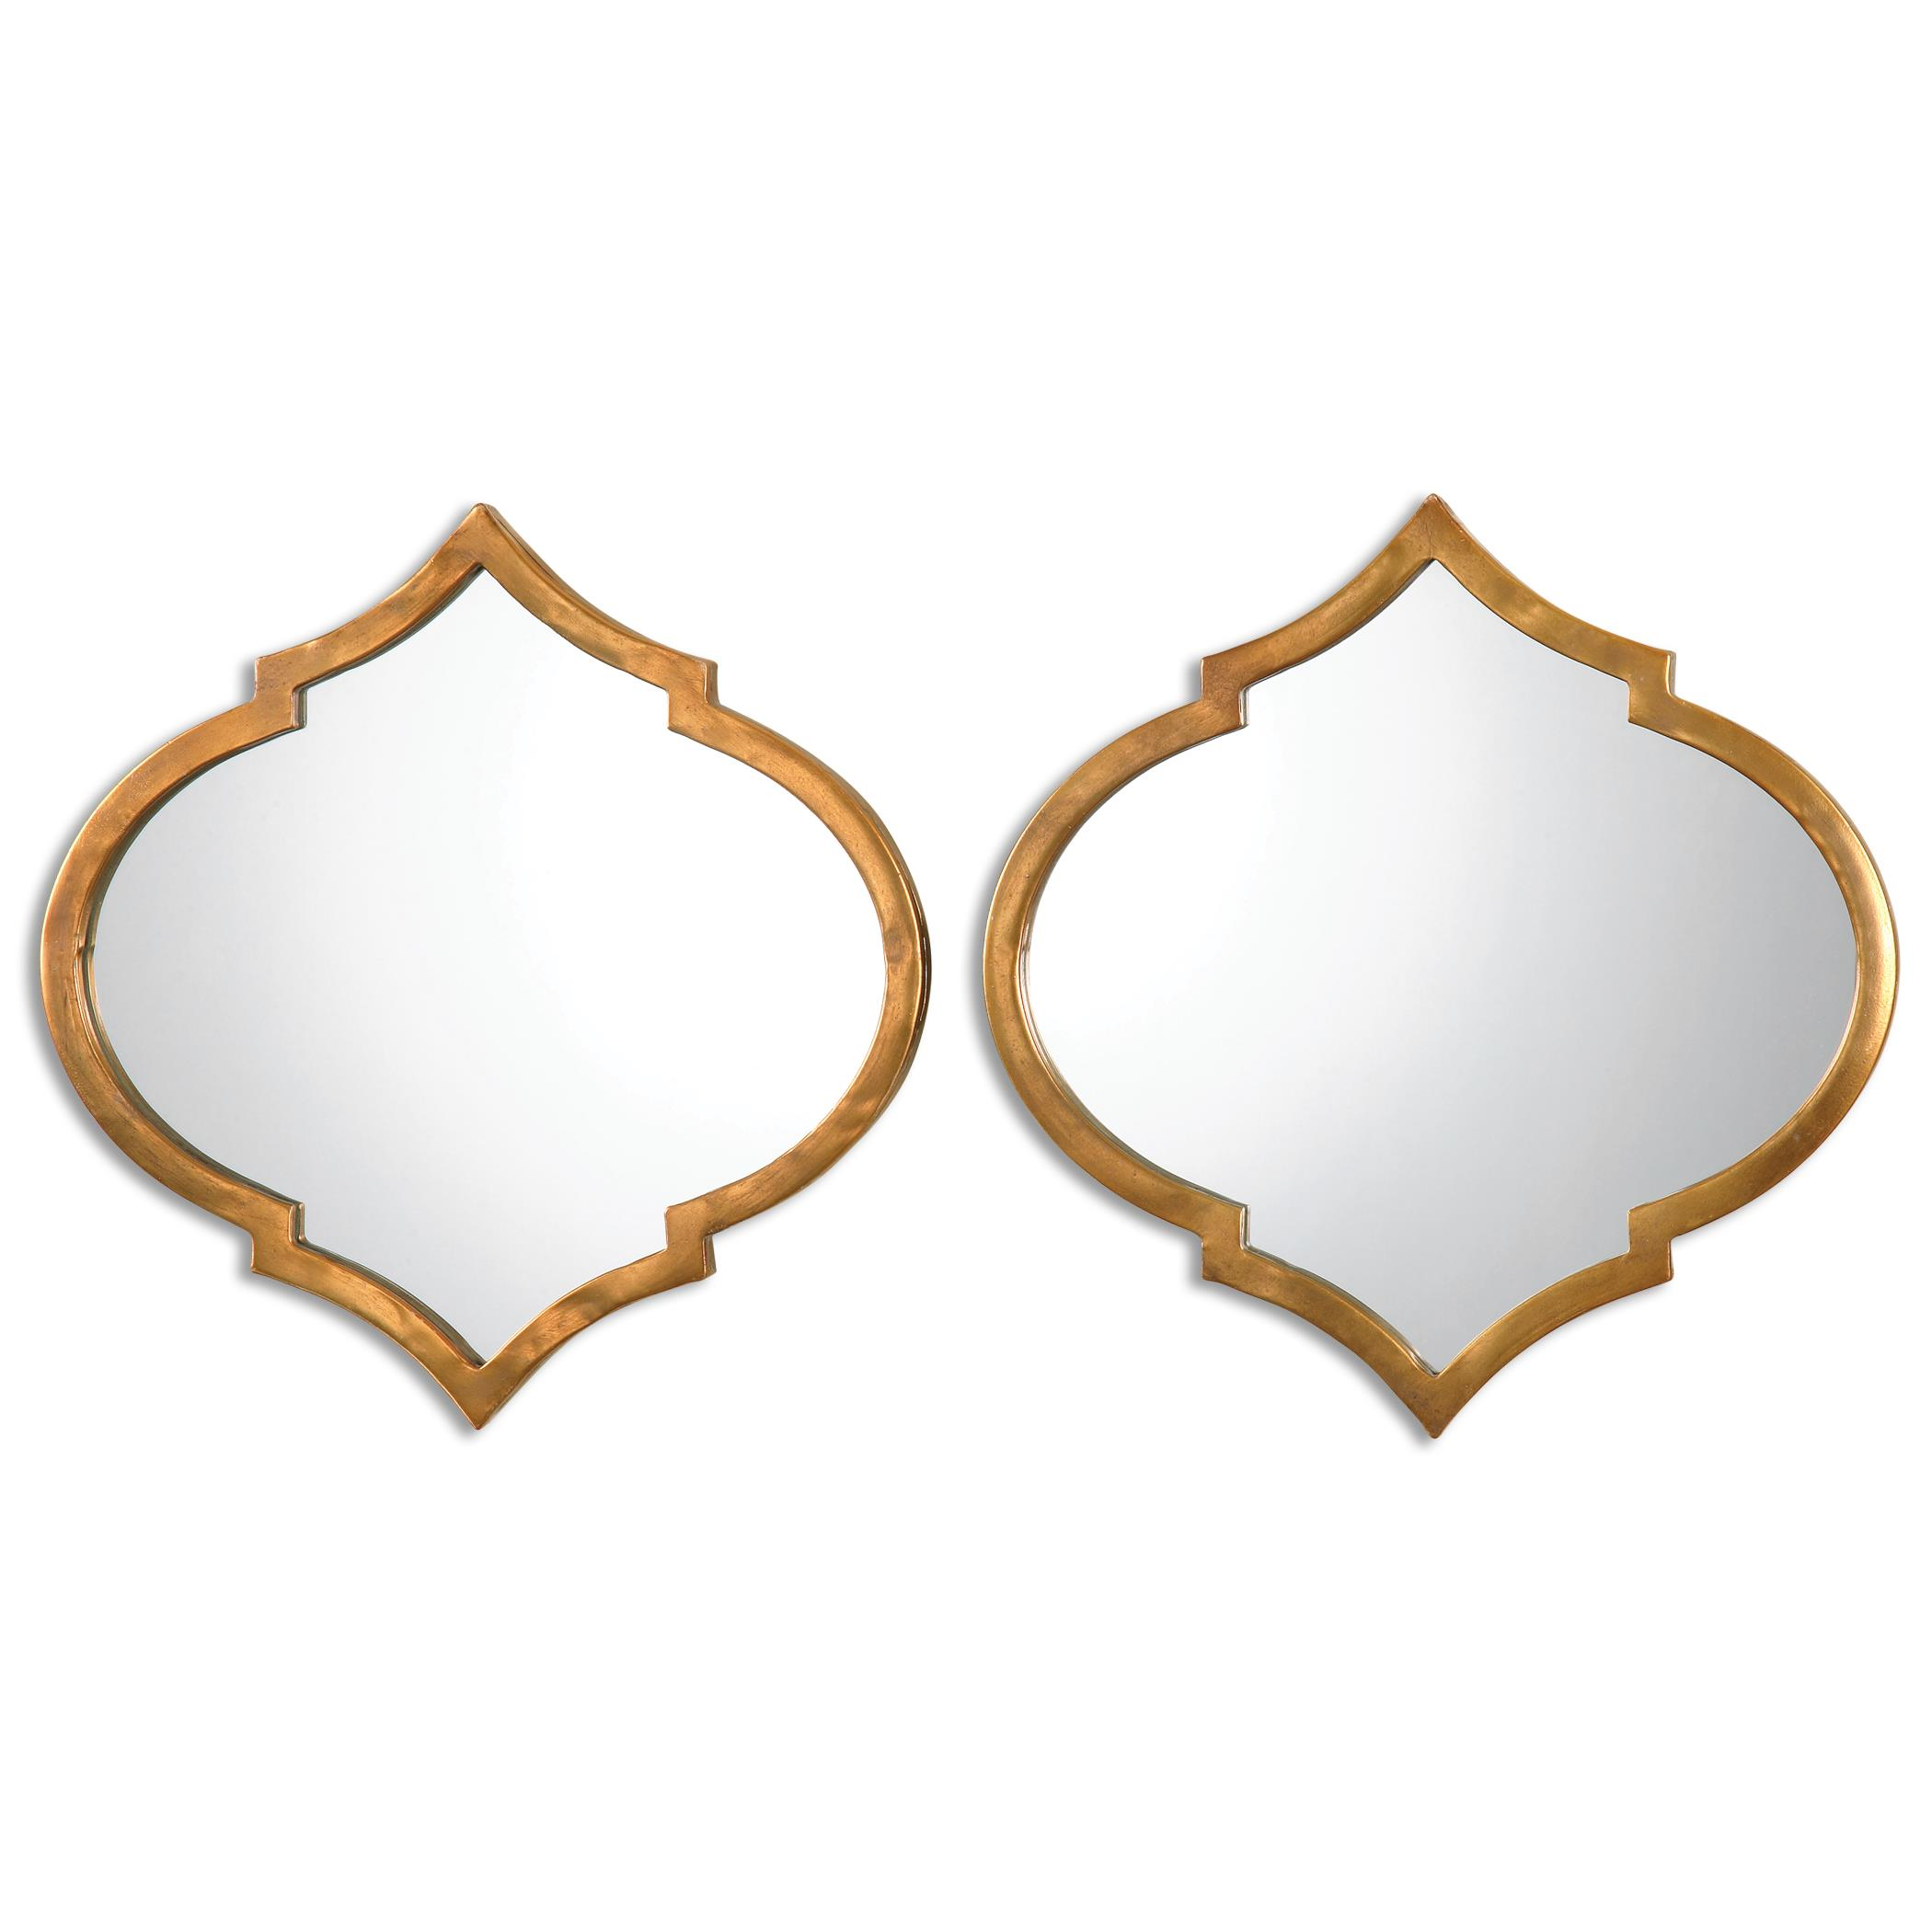 Uttermost Mirrors Jebel Antique Gold Mirrors, S/2 - Item Number: 12909